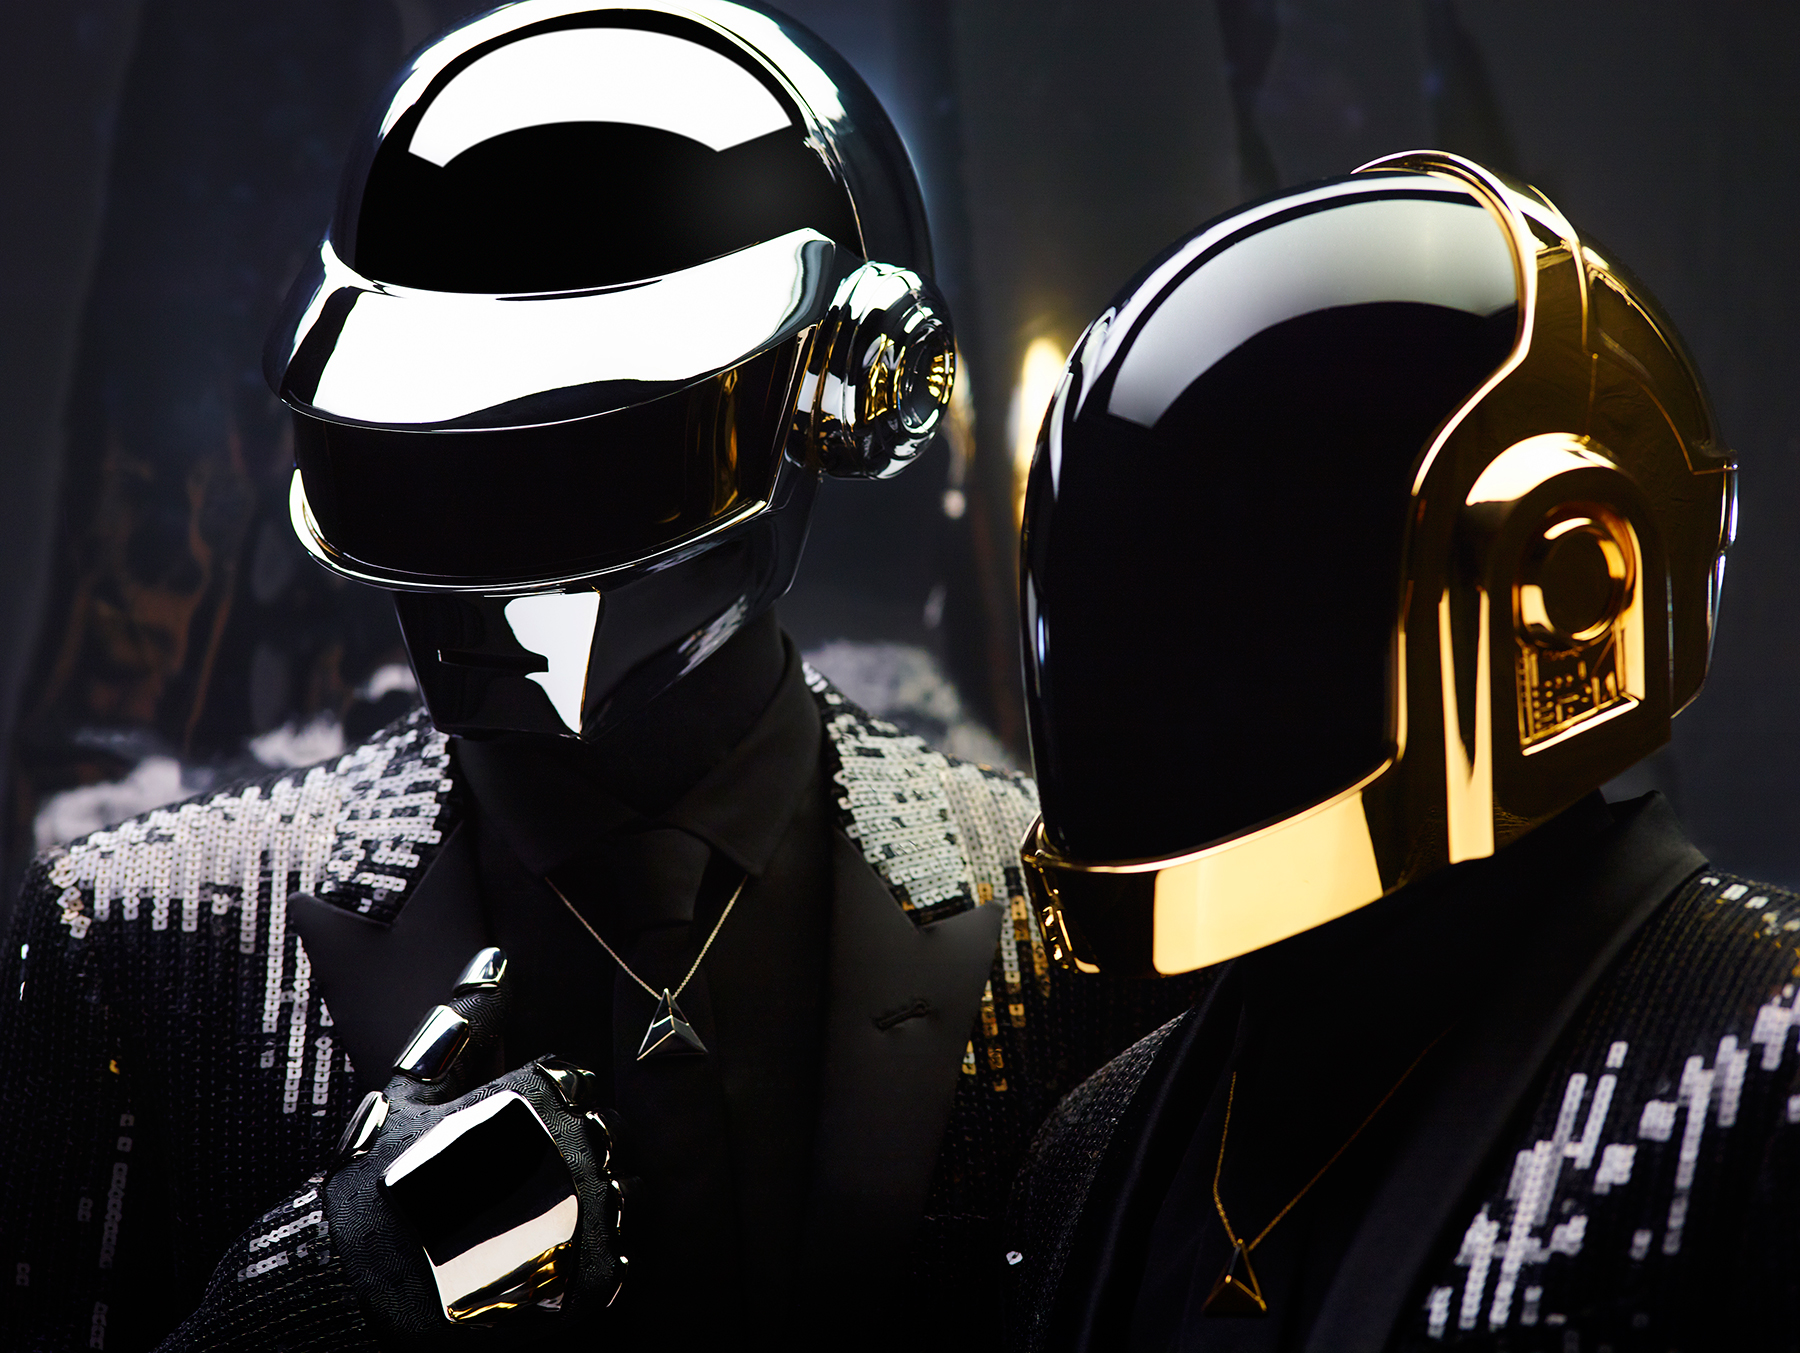 Daft Punk Playing Grammy Awards 2014